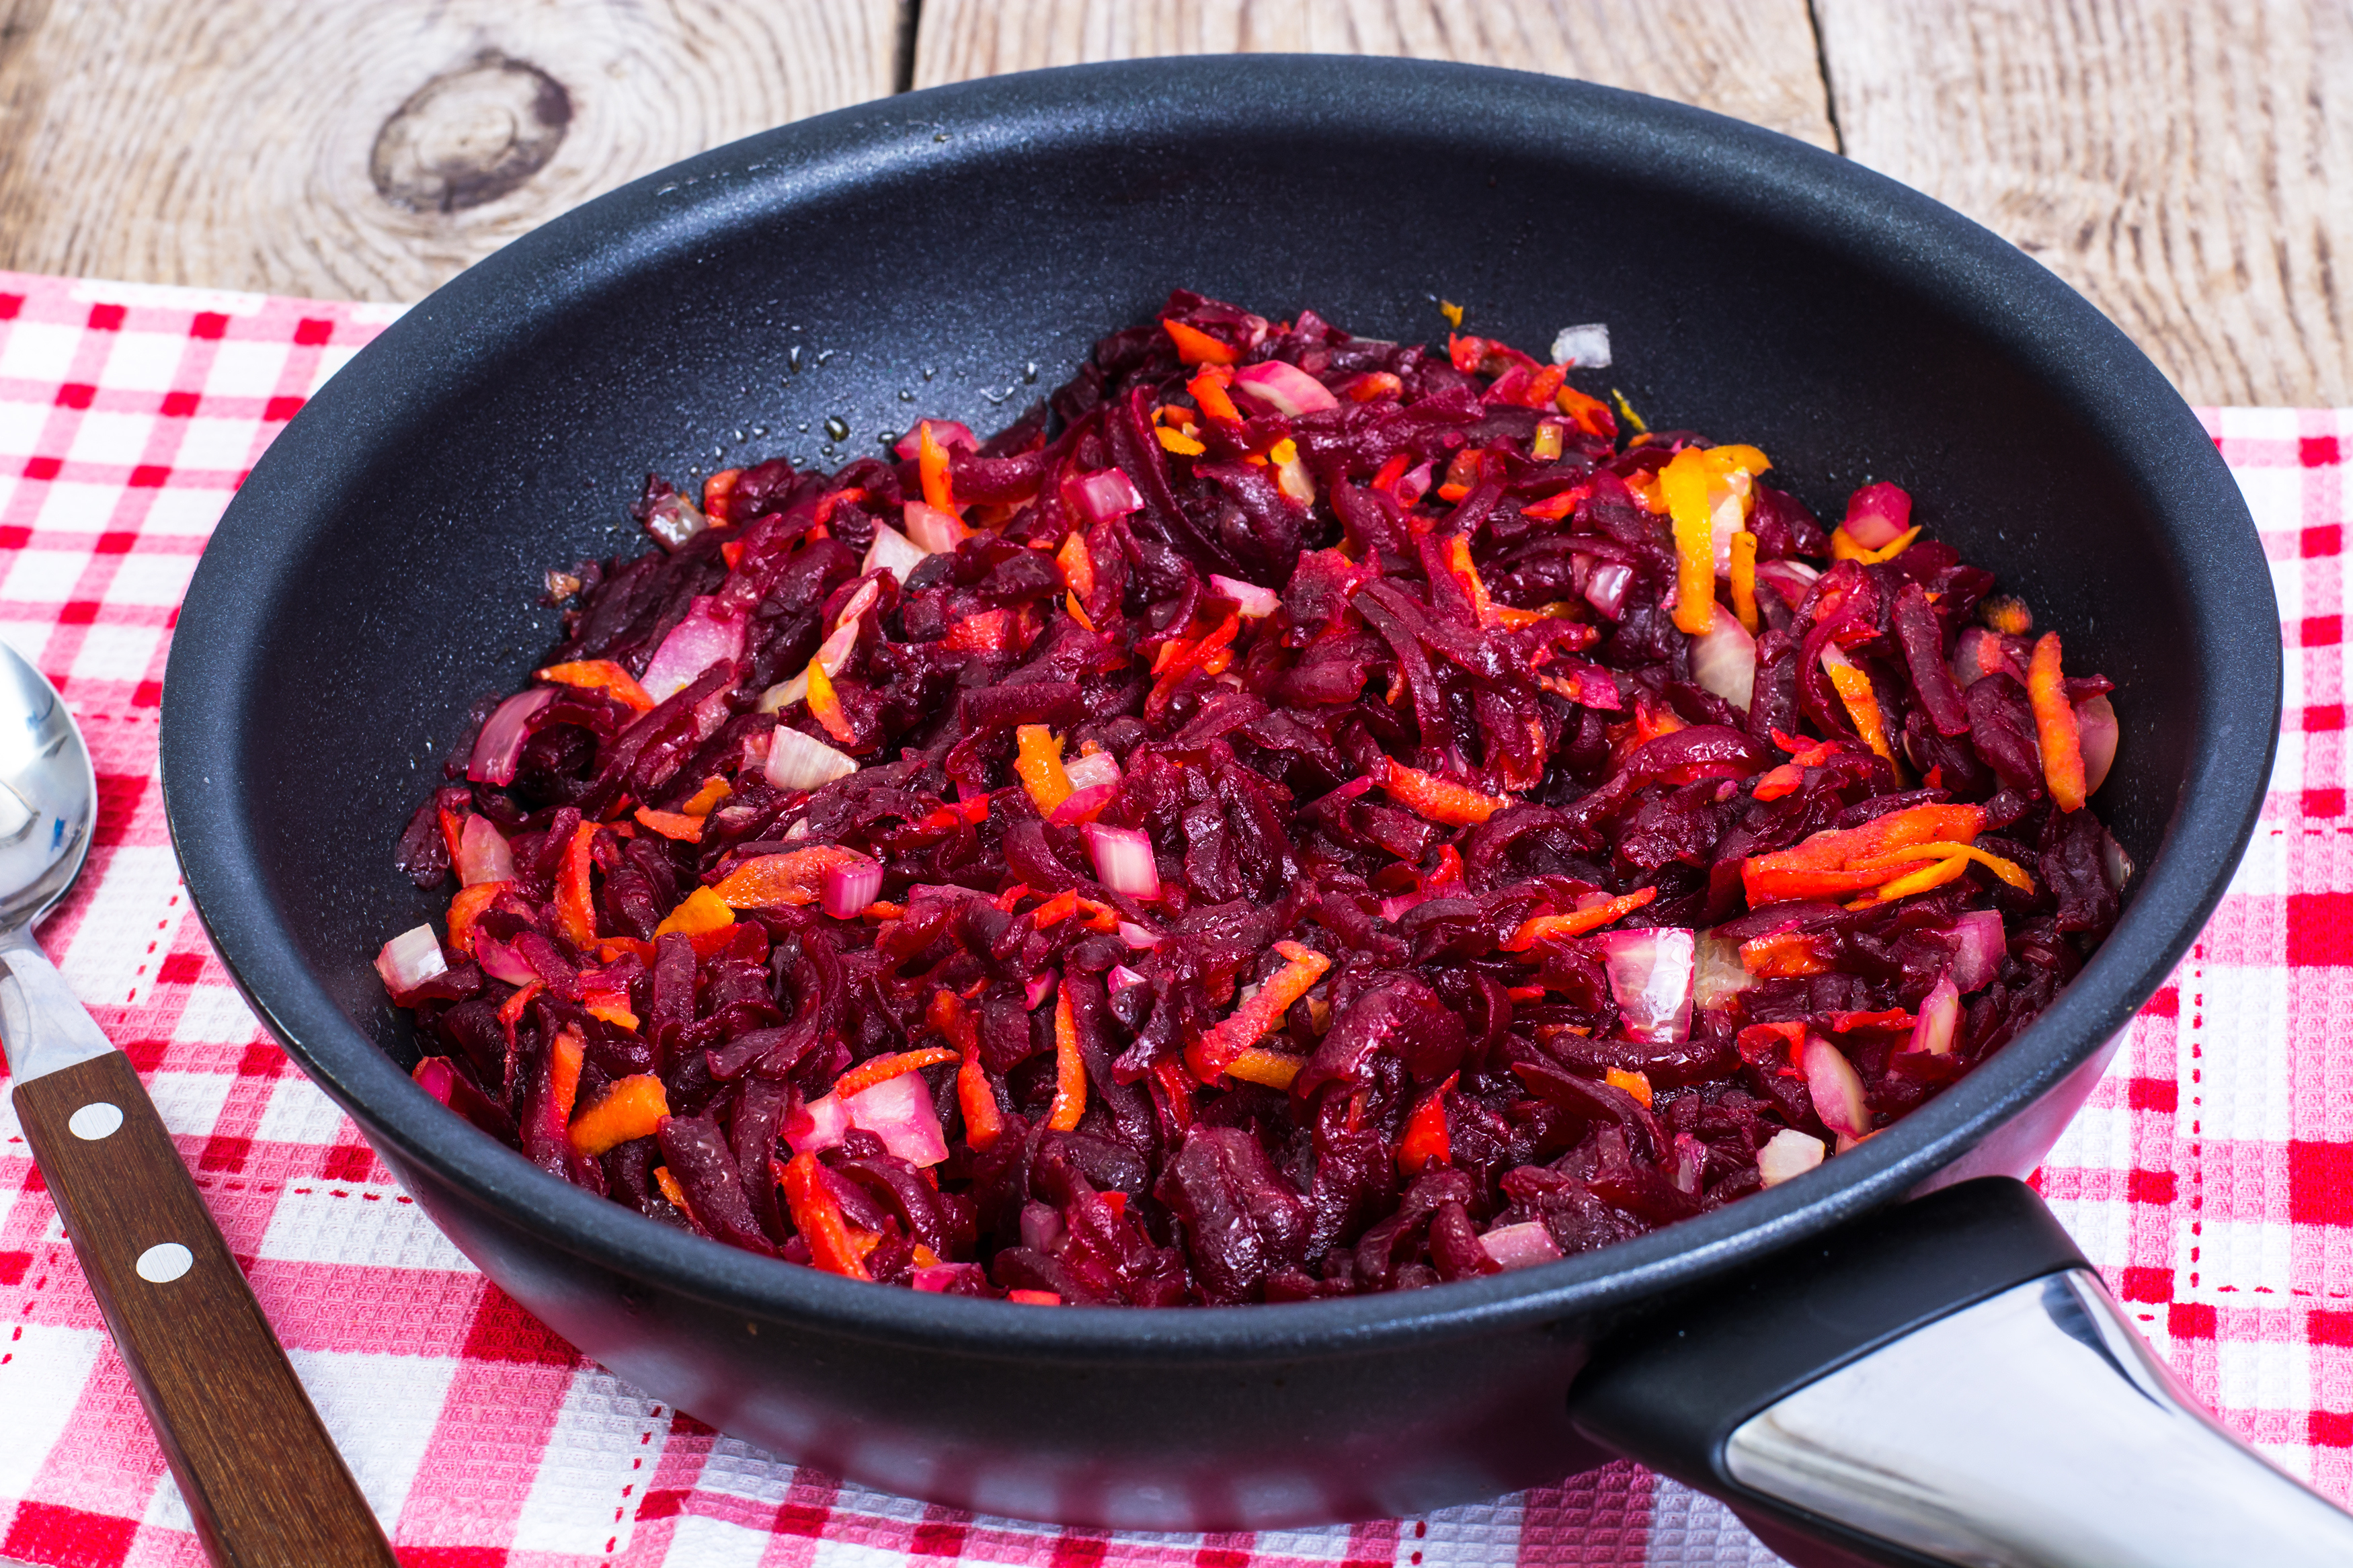 Beets, carrots, onions stewed with spices